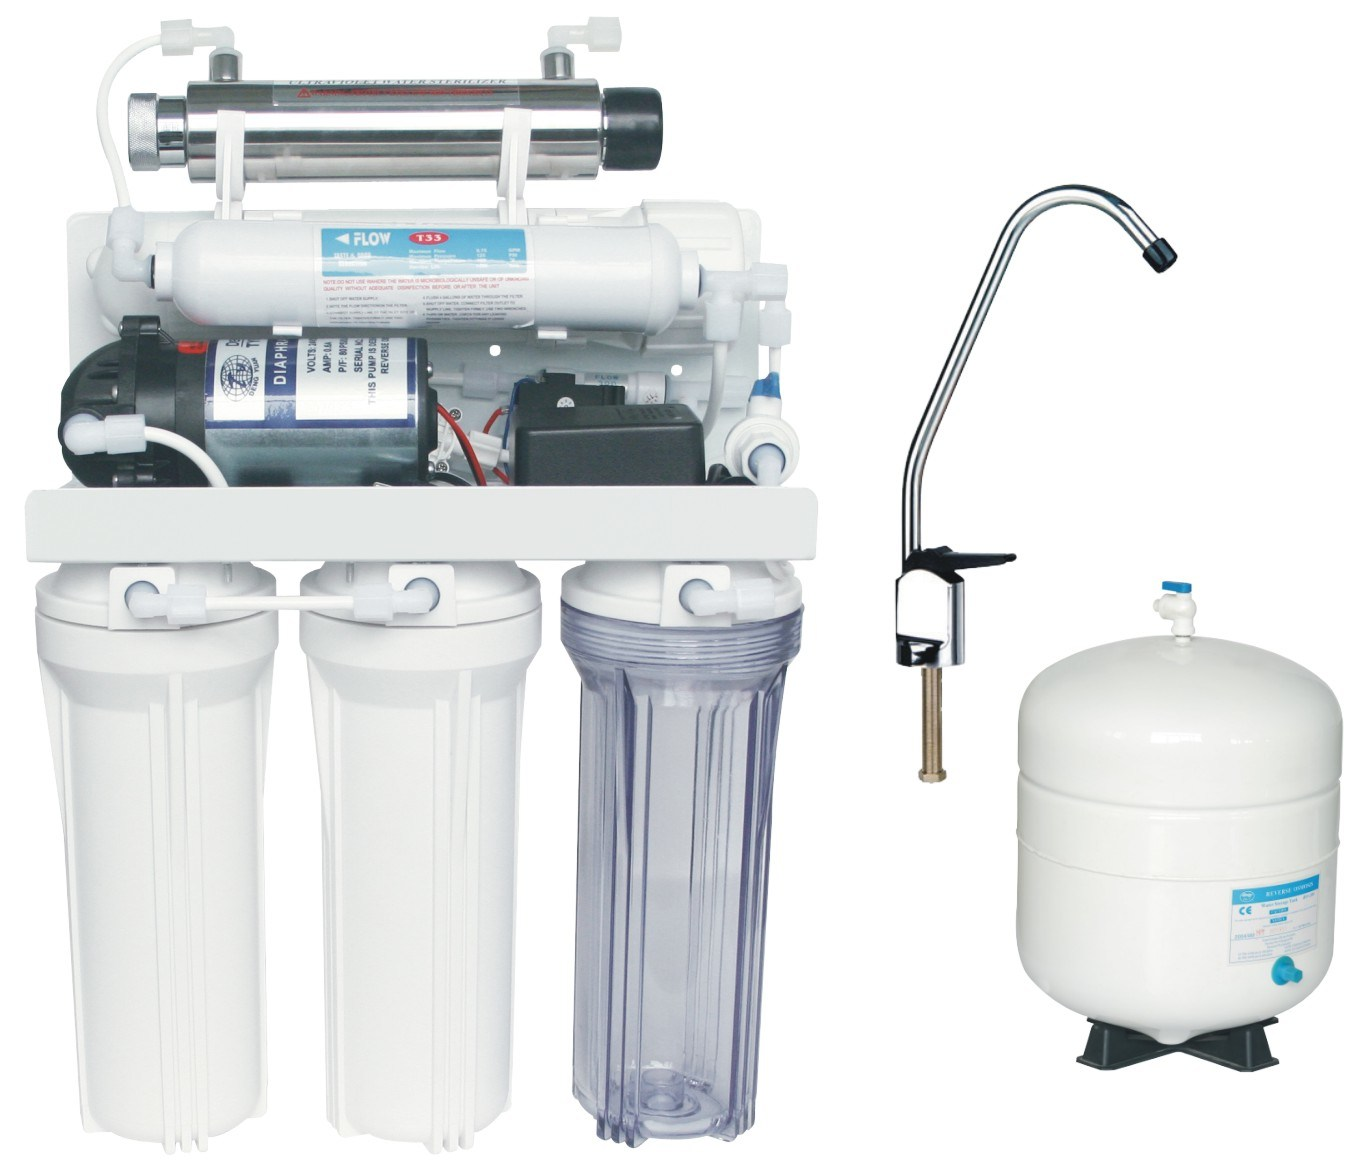 Home Water Filtration Systems: Filters, Purifier and lots more!